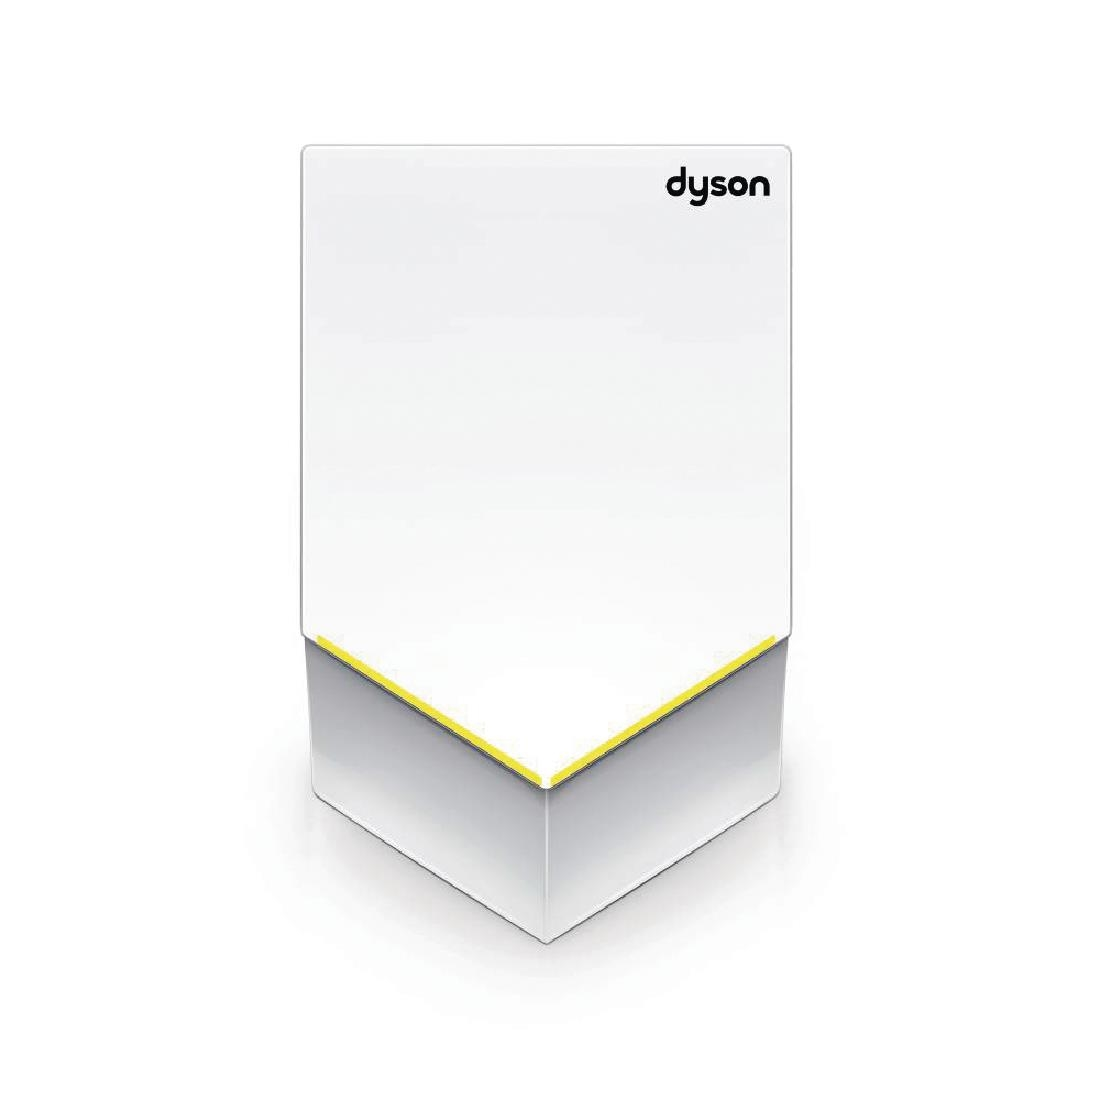 Image of Dyson Airblade V Hand Dryer White